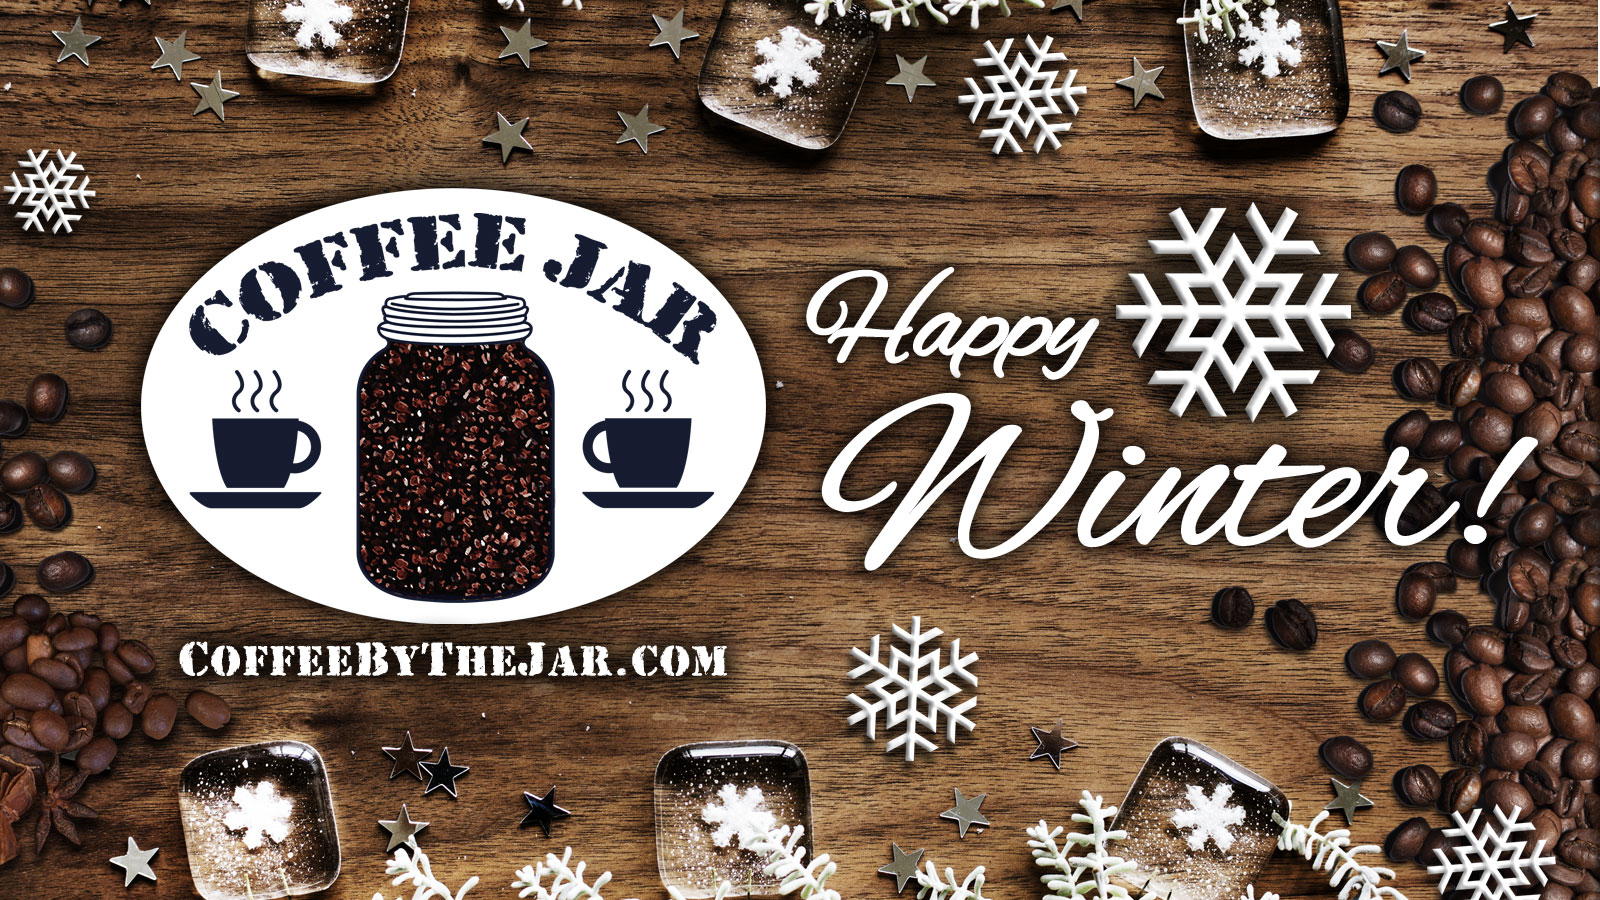 Coffee-Jar-Happy-Winter-wallpaper01-1600x900